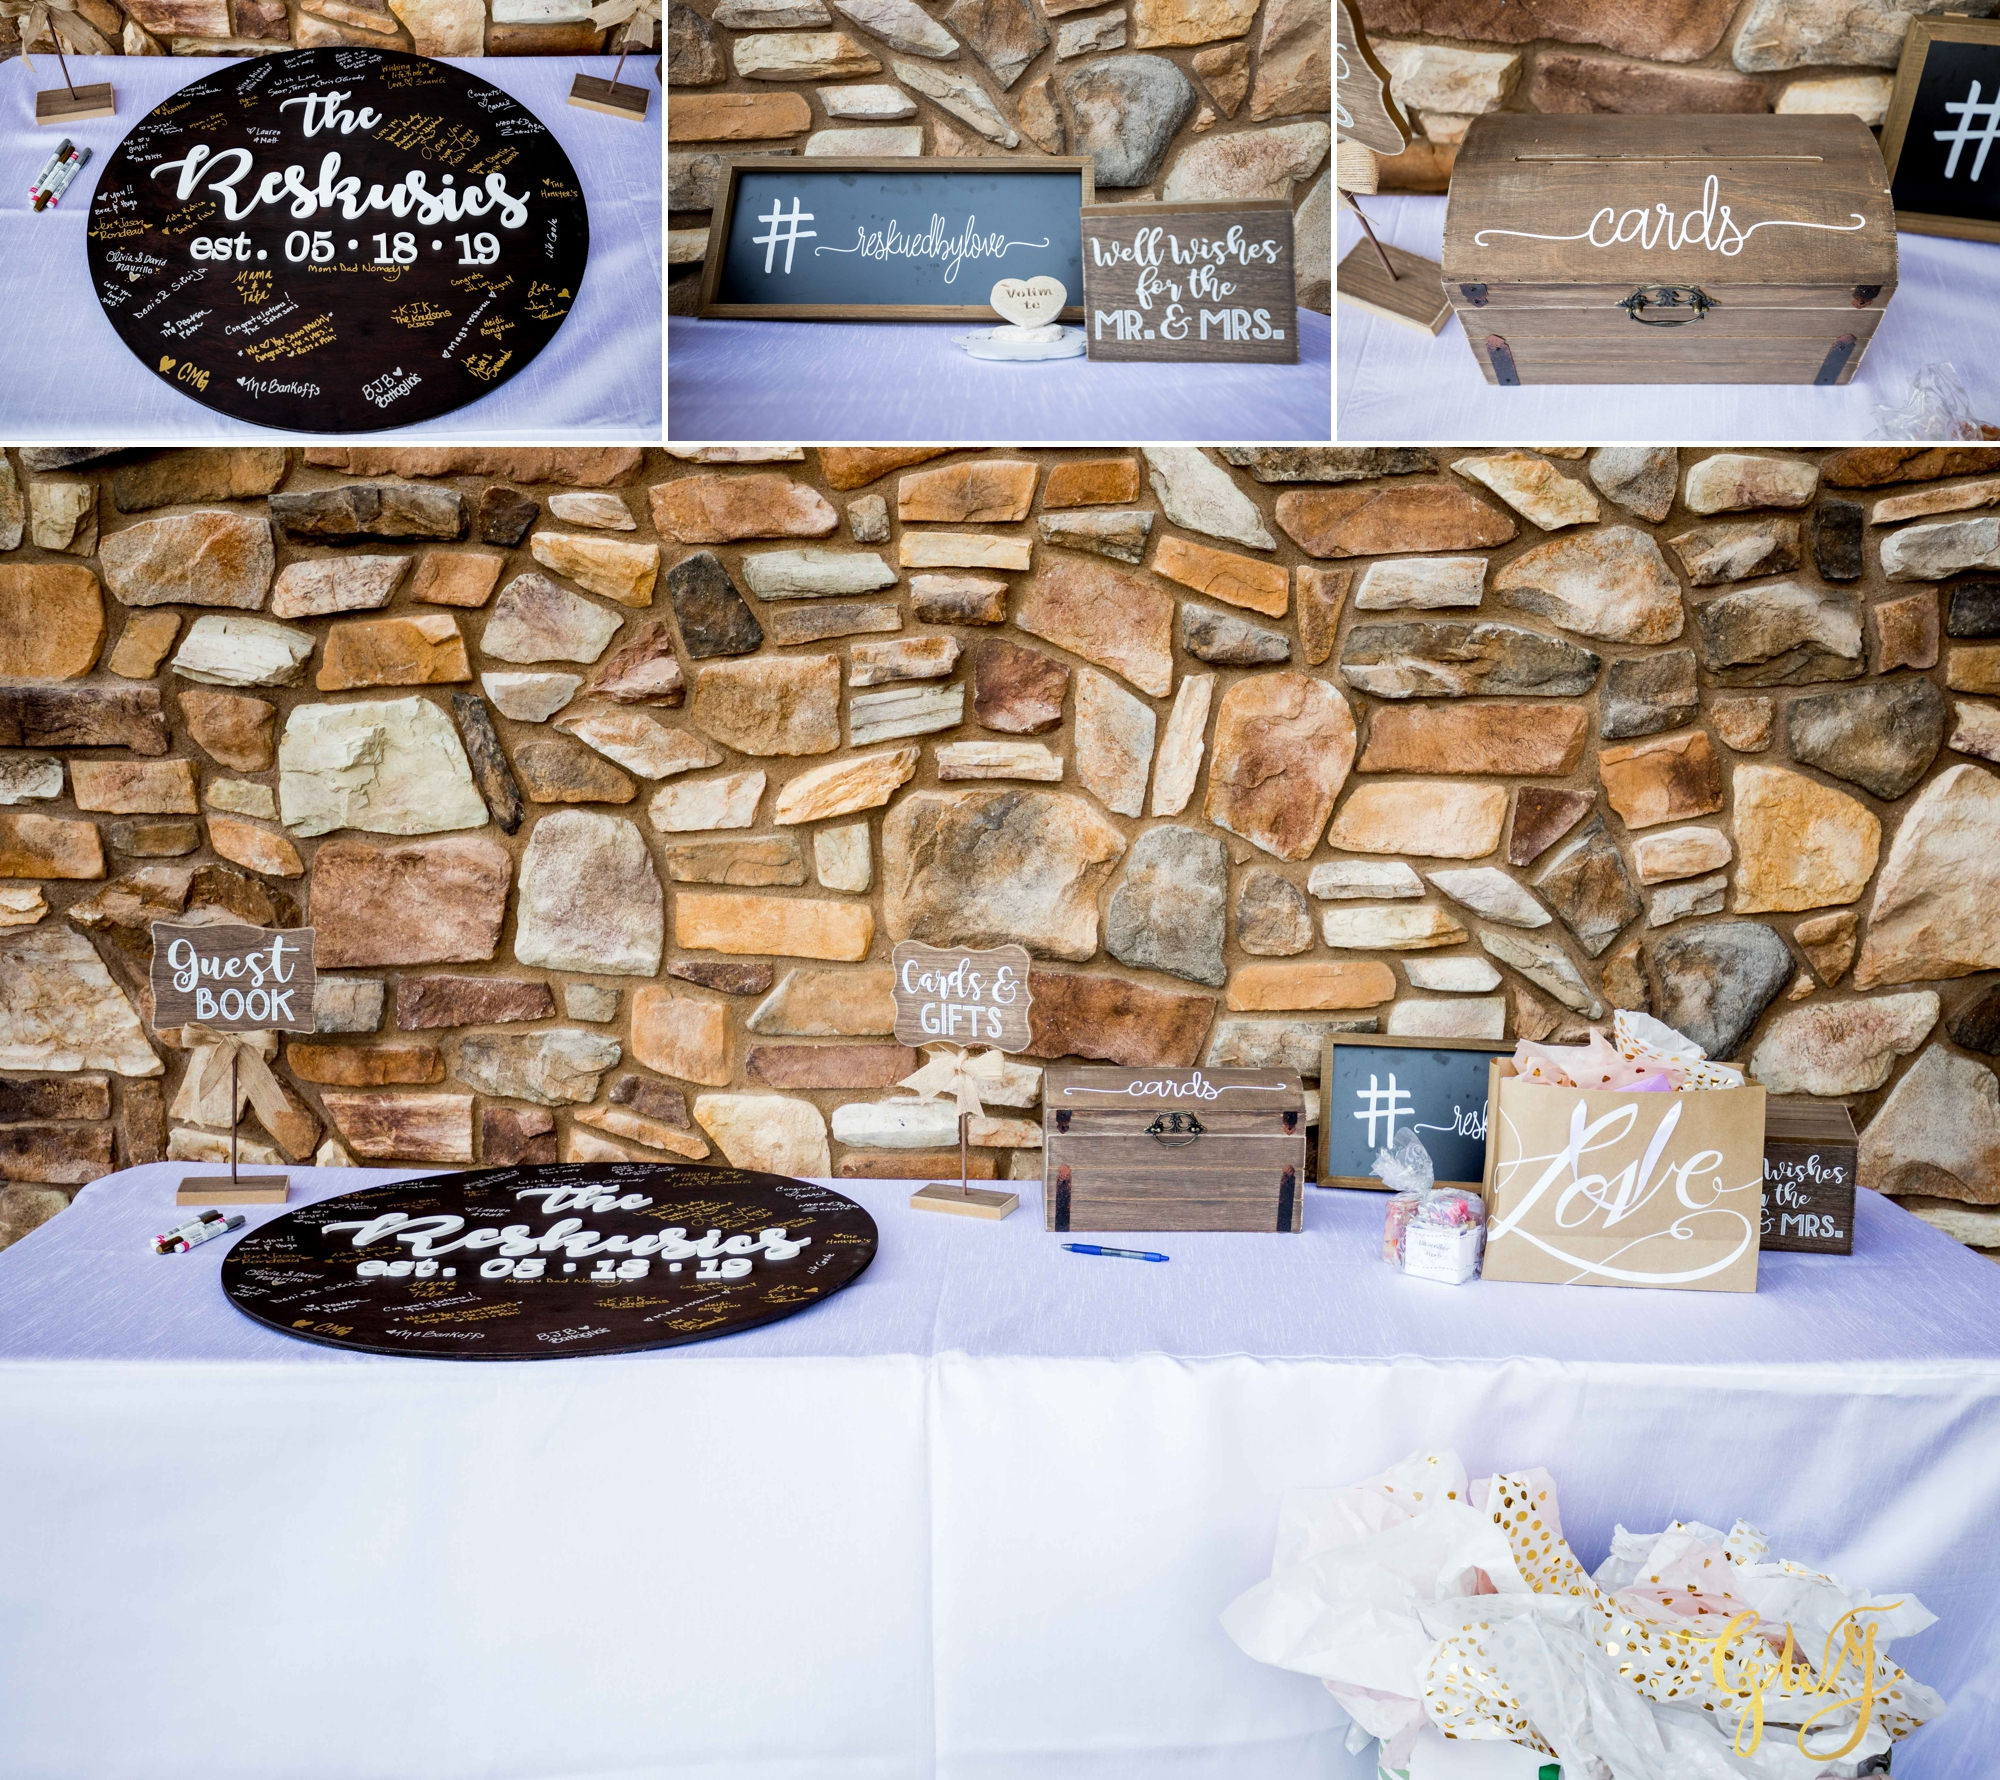 Kristen + Krsto's Romantic Temecula Winery Spring Wedding by Glass Woods Media 23.jpg